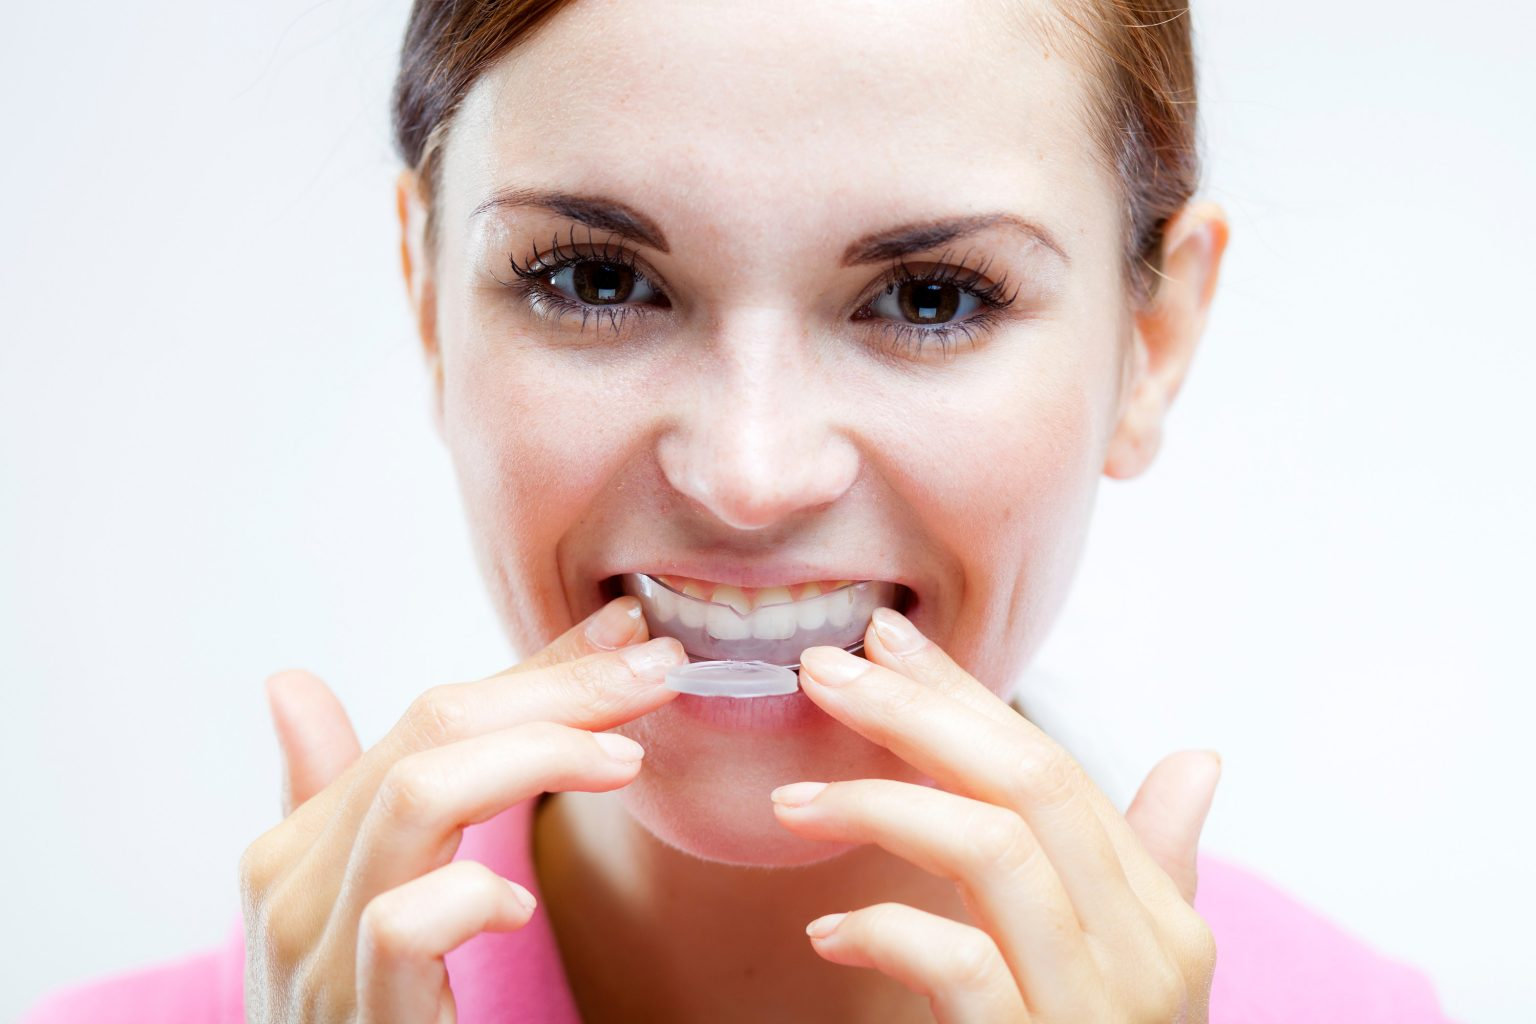 Eight Not So Crazy Questions About Living With Invisalign